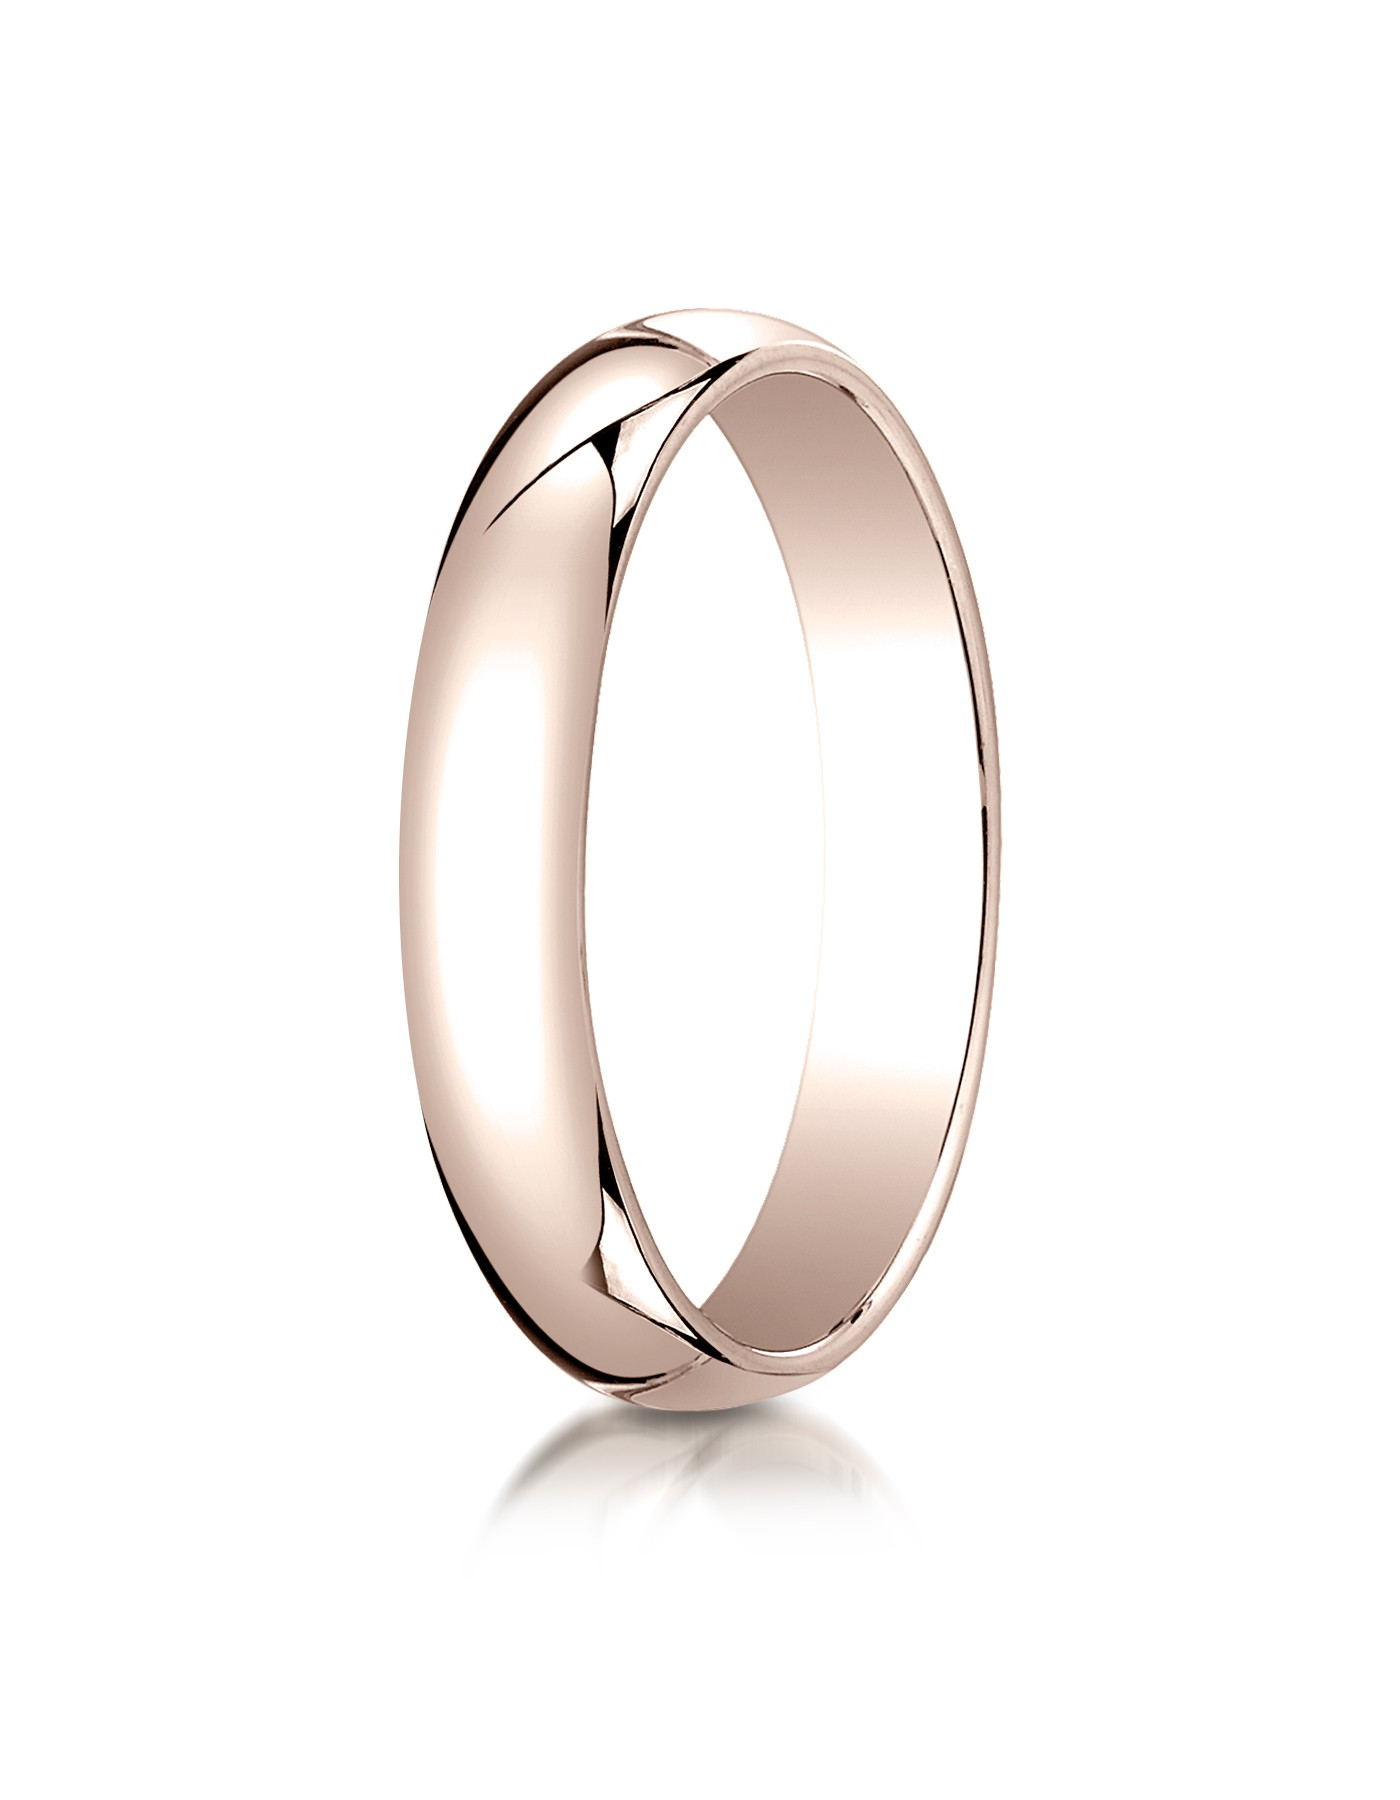 14k Rose Gold 4mm Slightly Domed Traditional Oval Ring